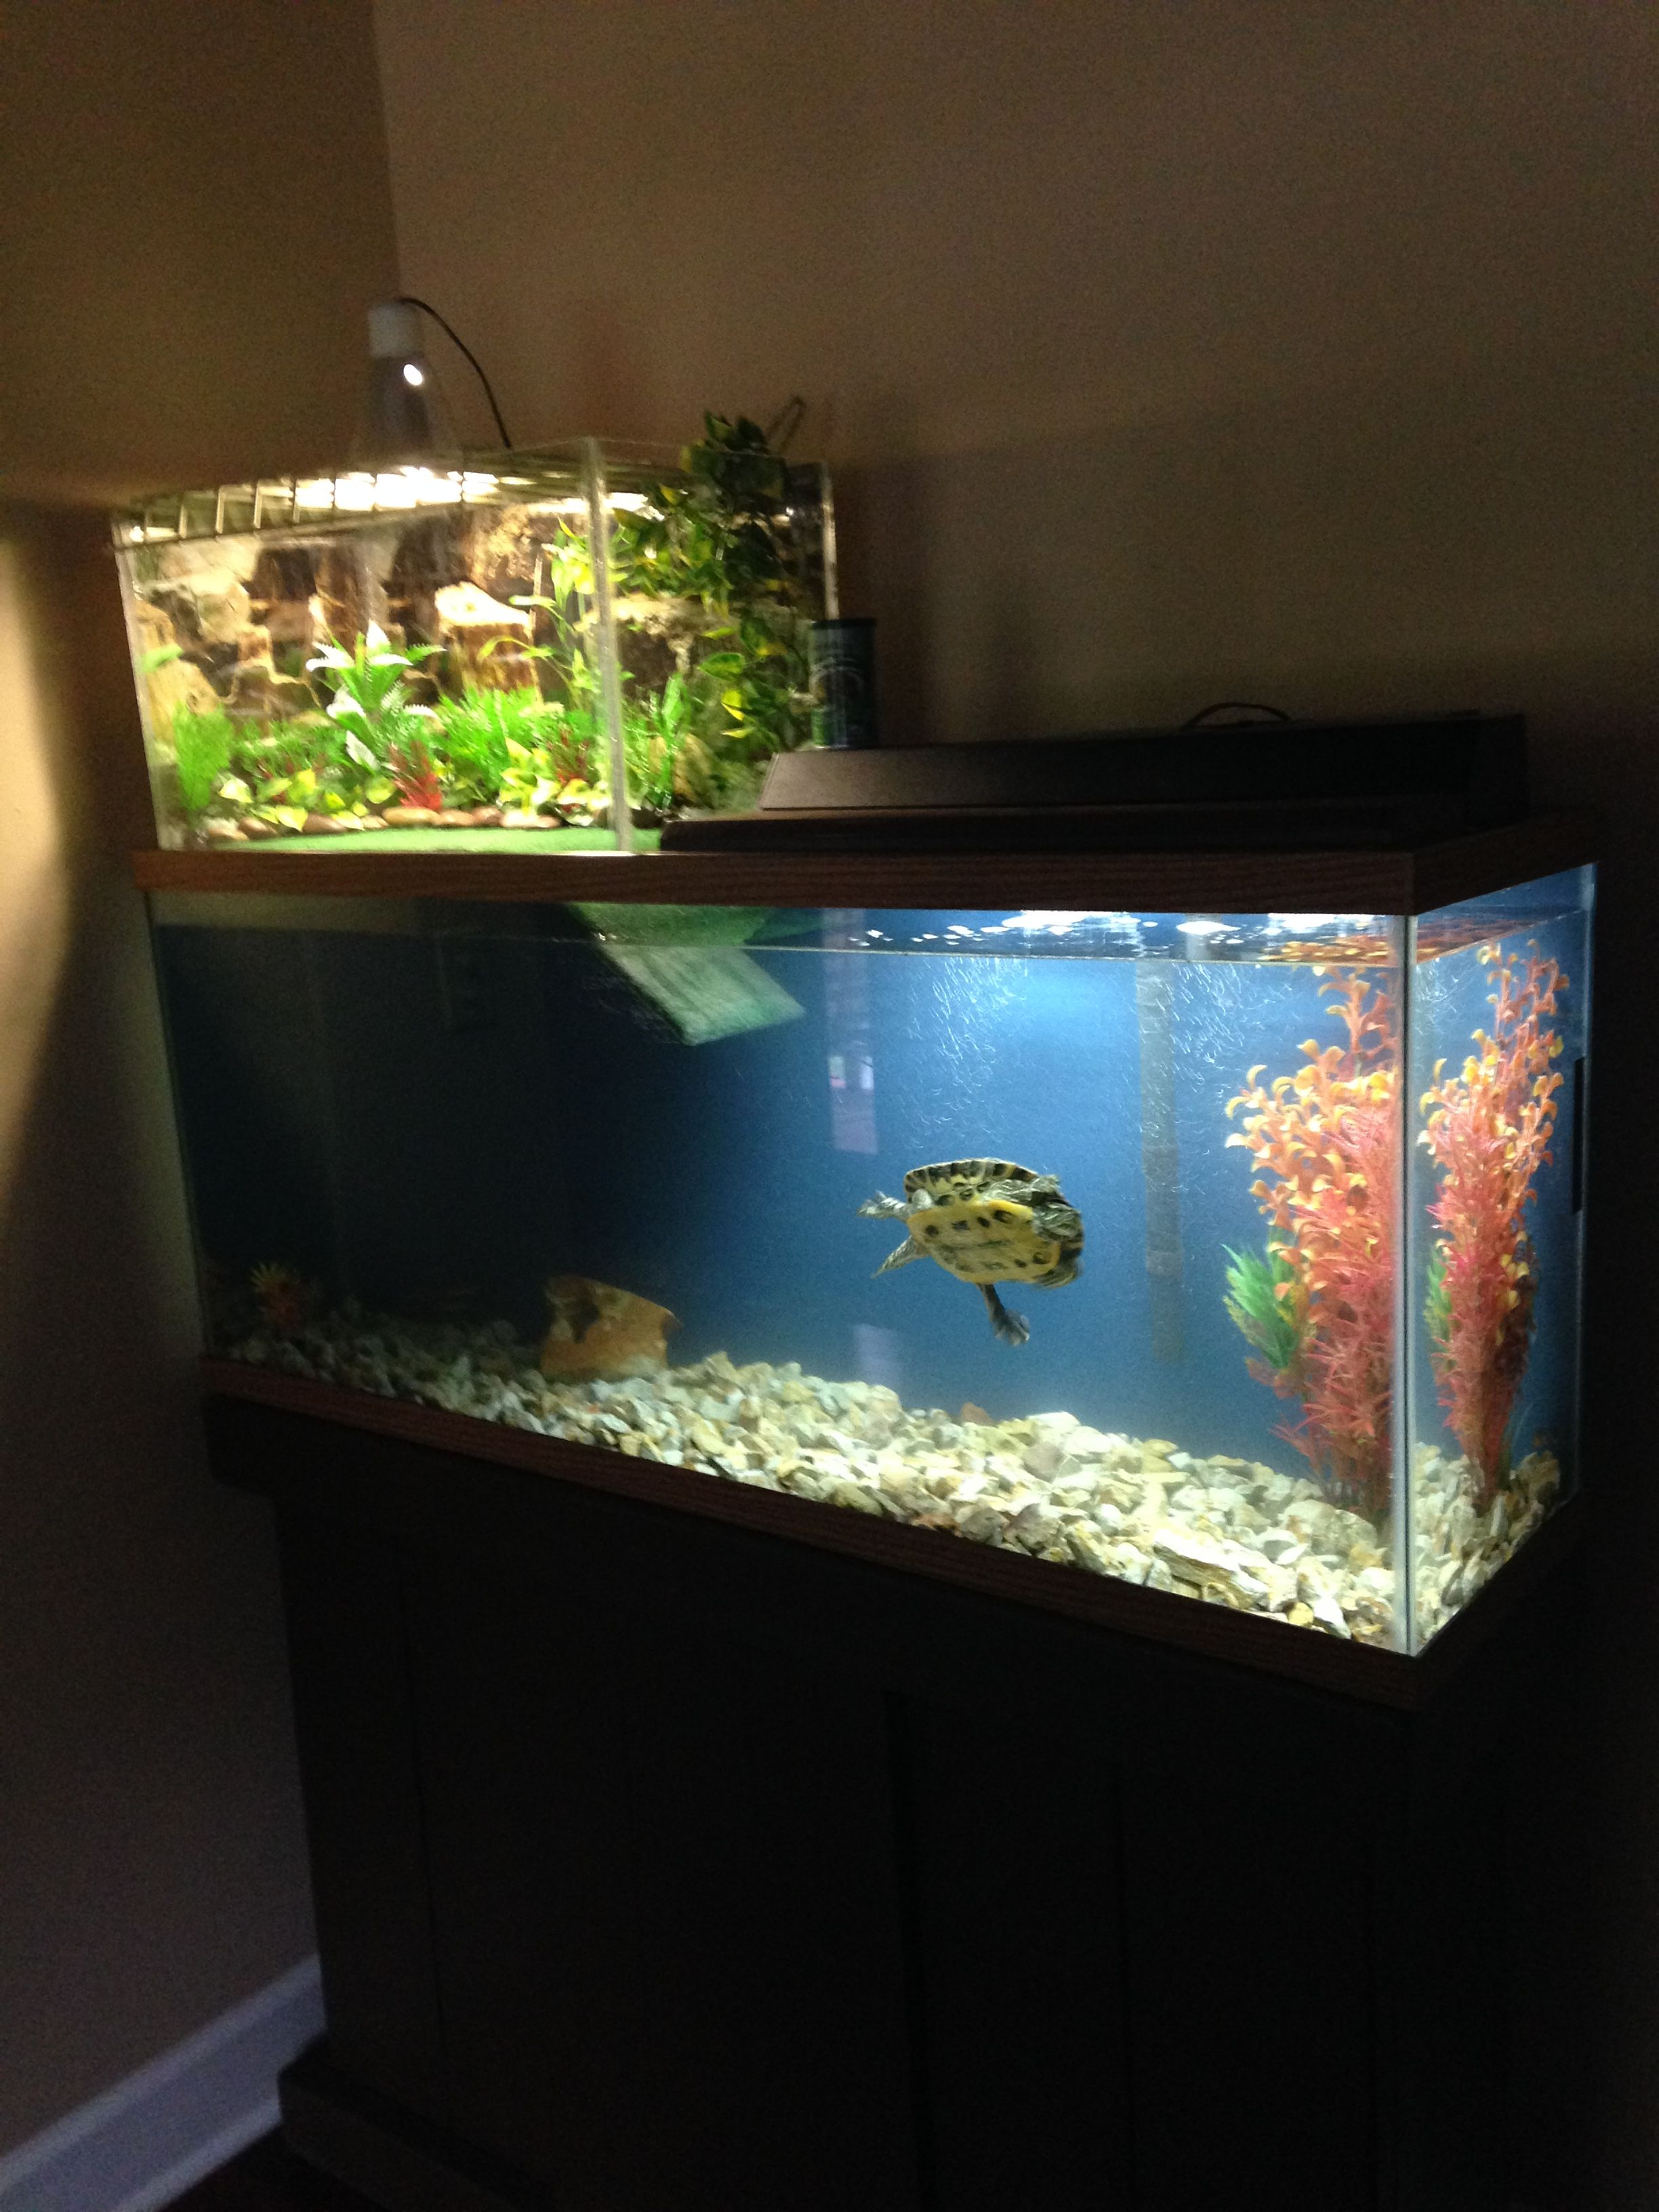 recommended best filter for turtle tank 2019 reviewed by experts rh pinterest com